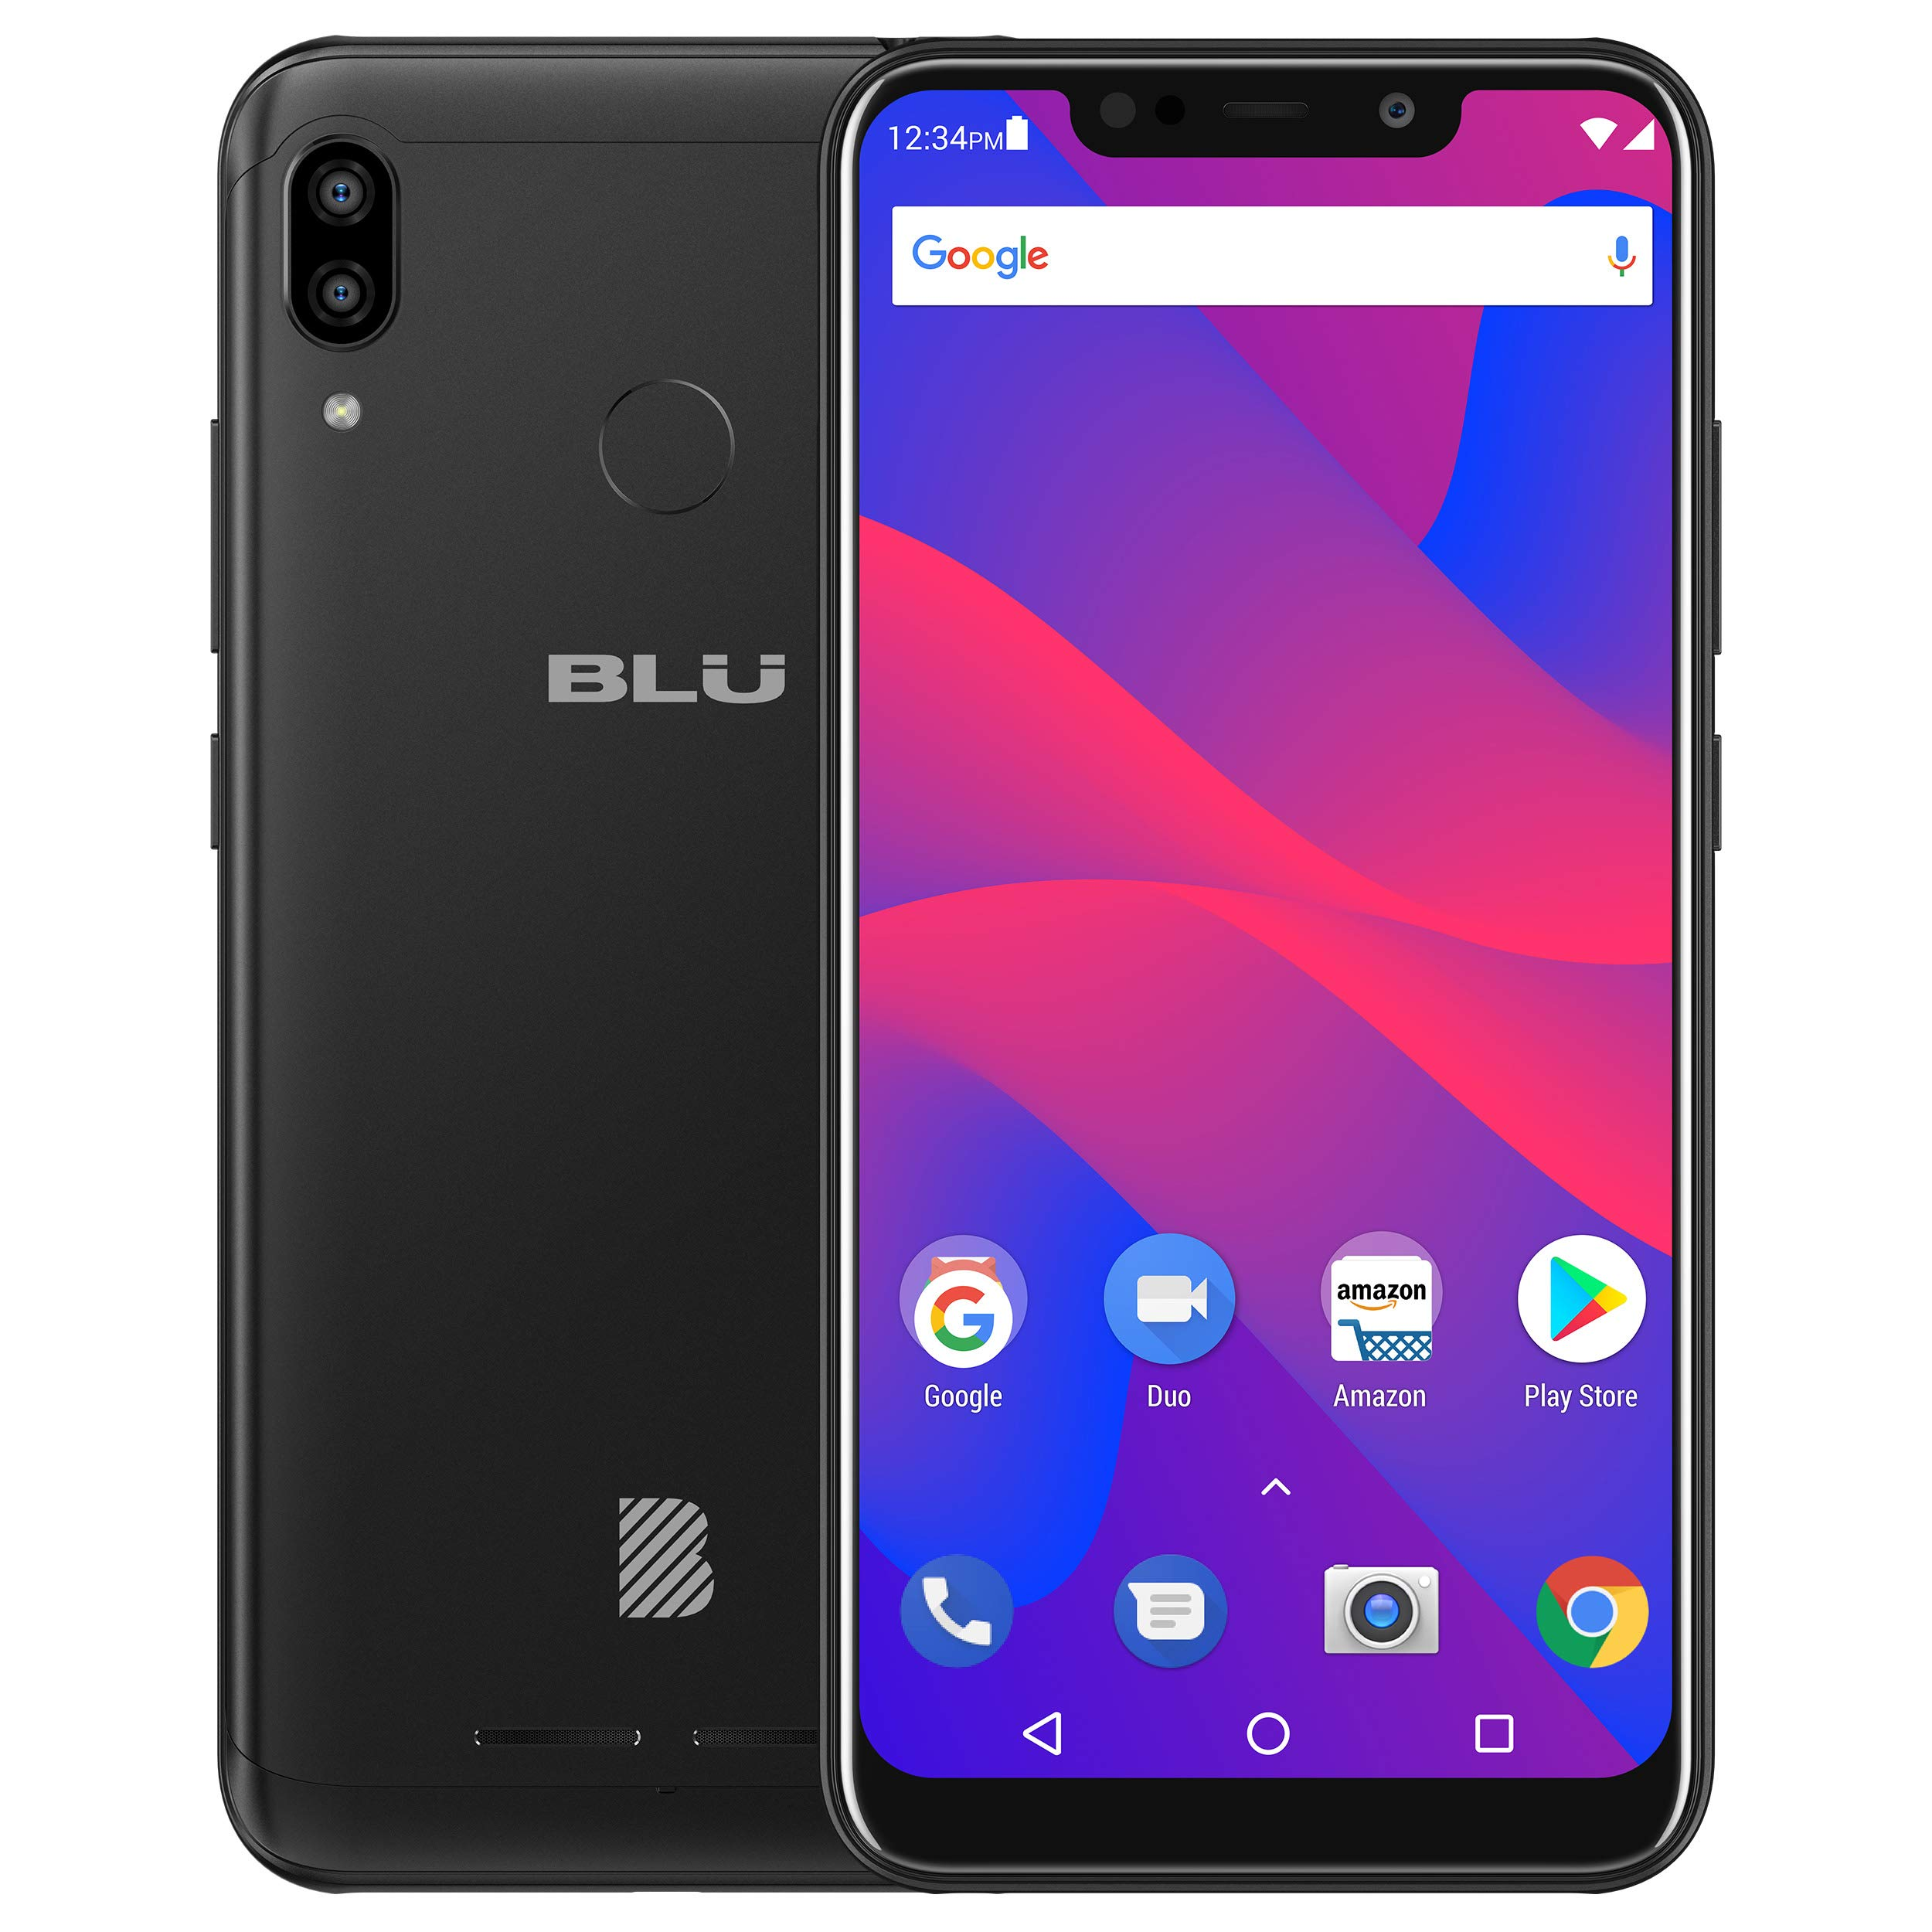 blu-vivo-xl4-62-hd-display-smartphone-32gb3gb-ram-black